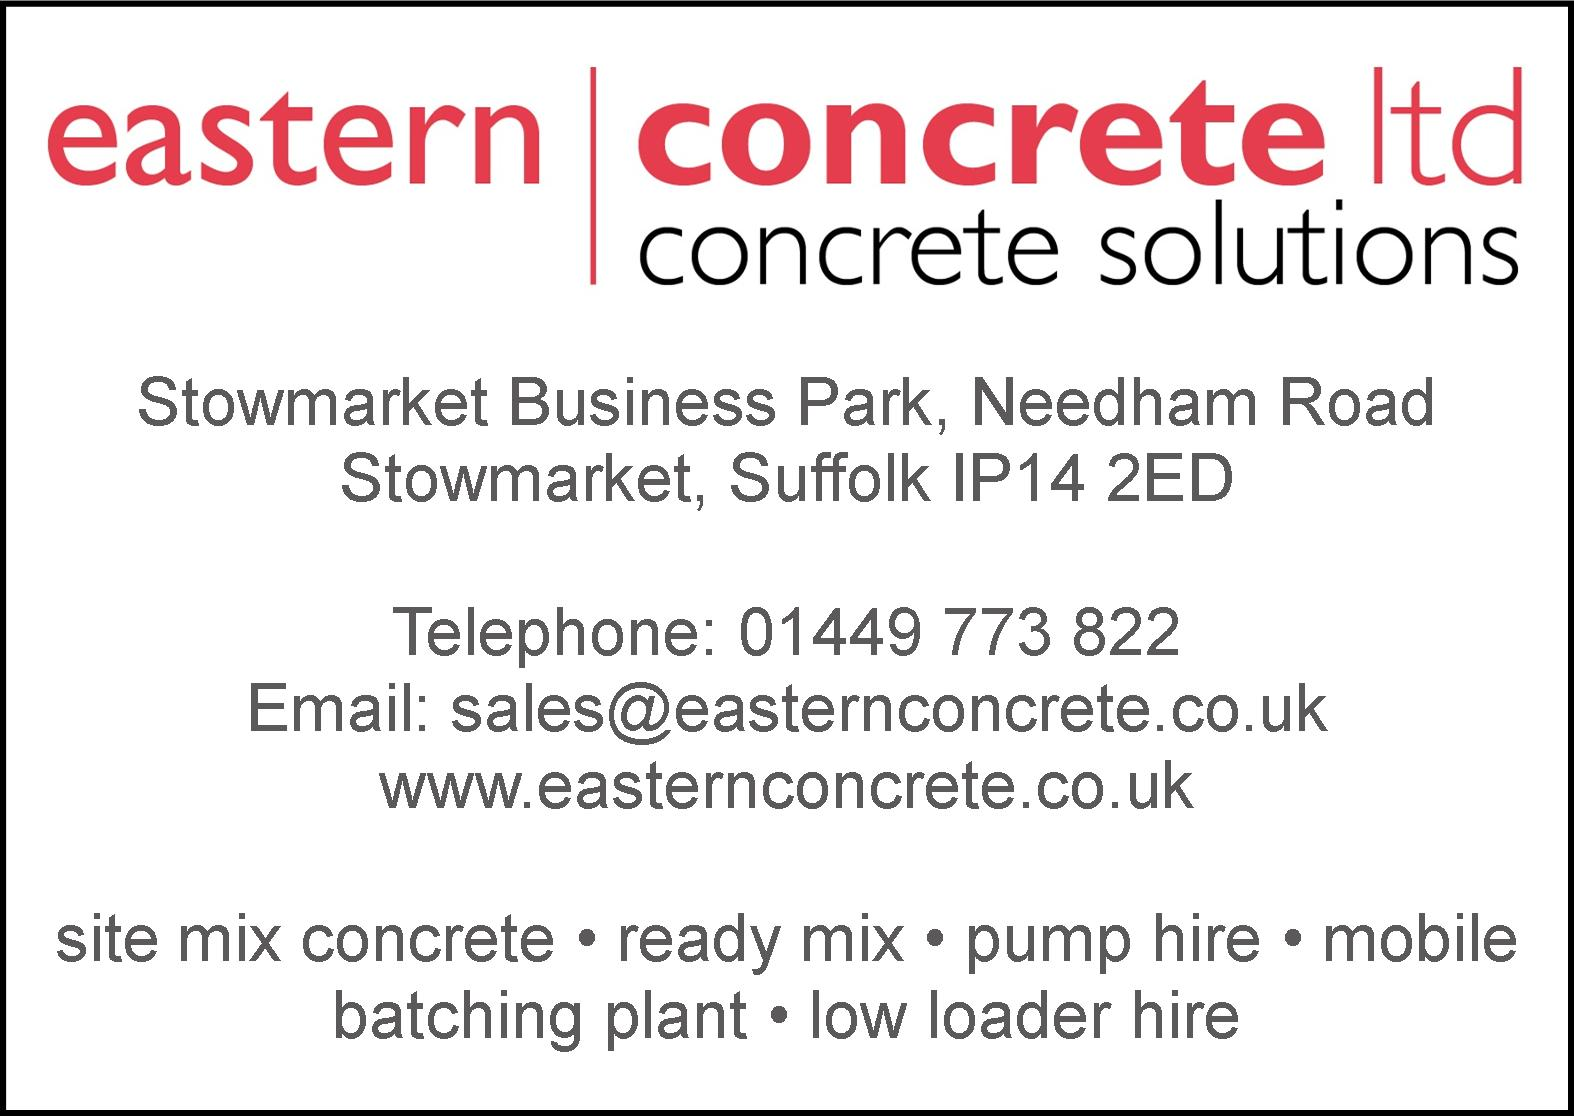 Eastern Concrete Ltd